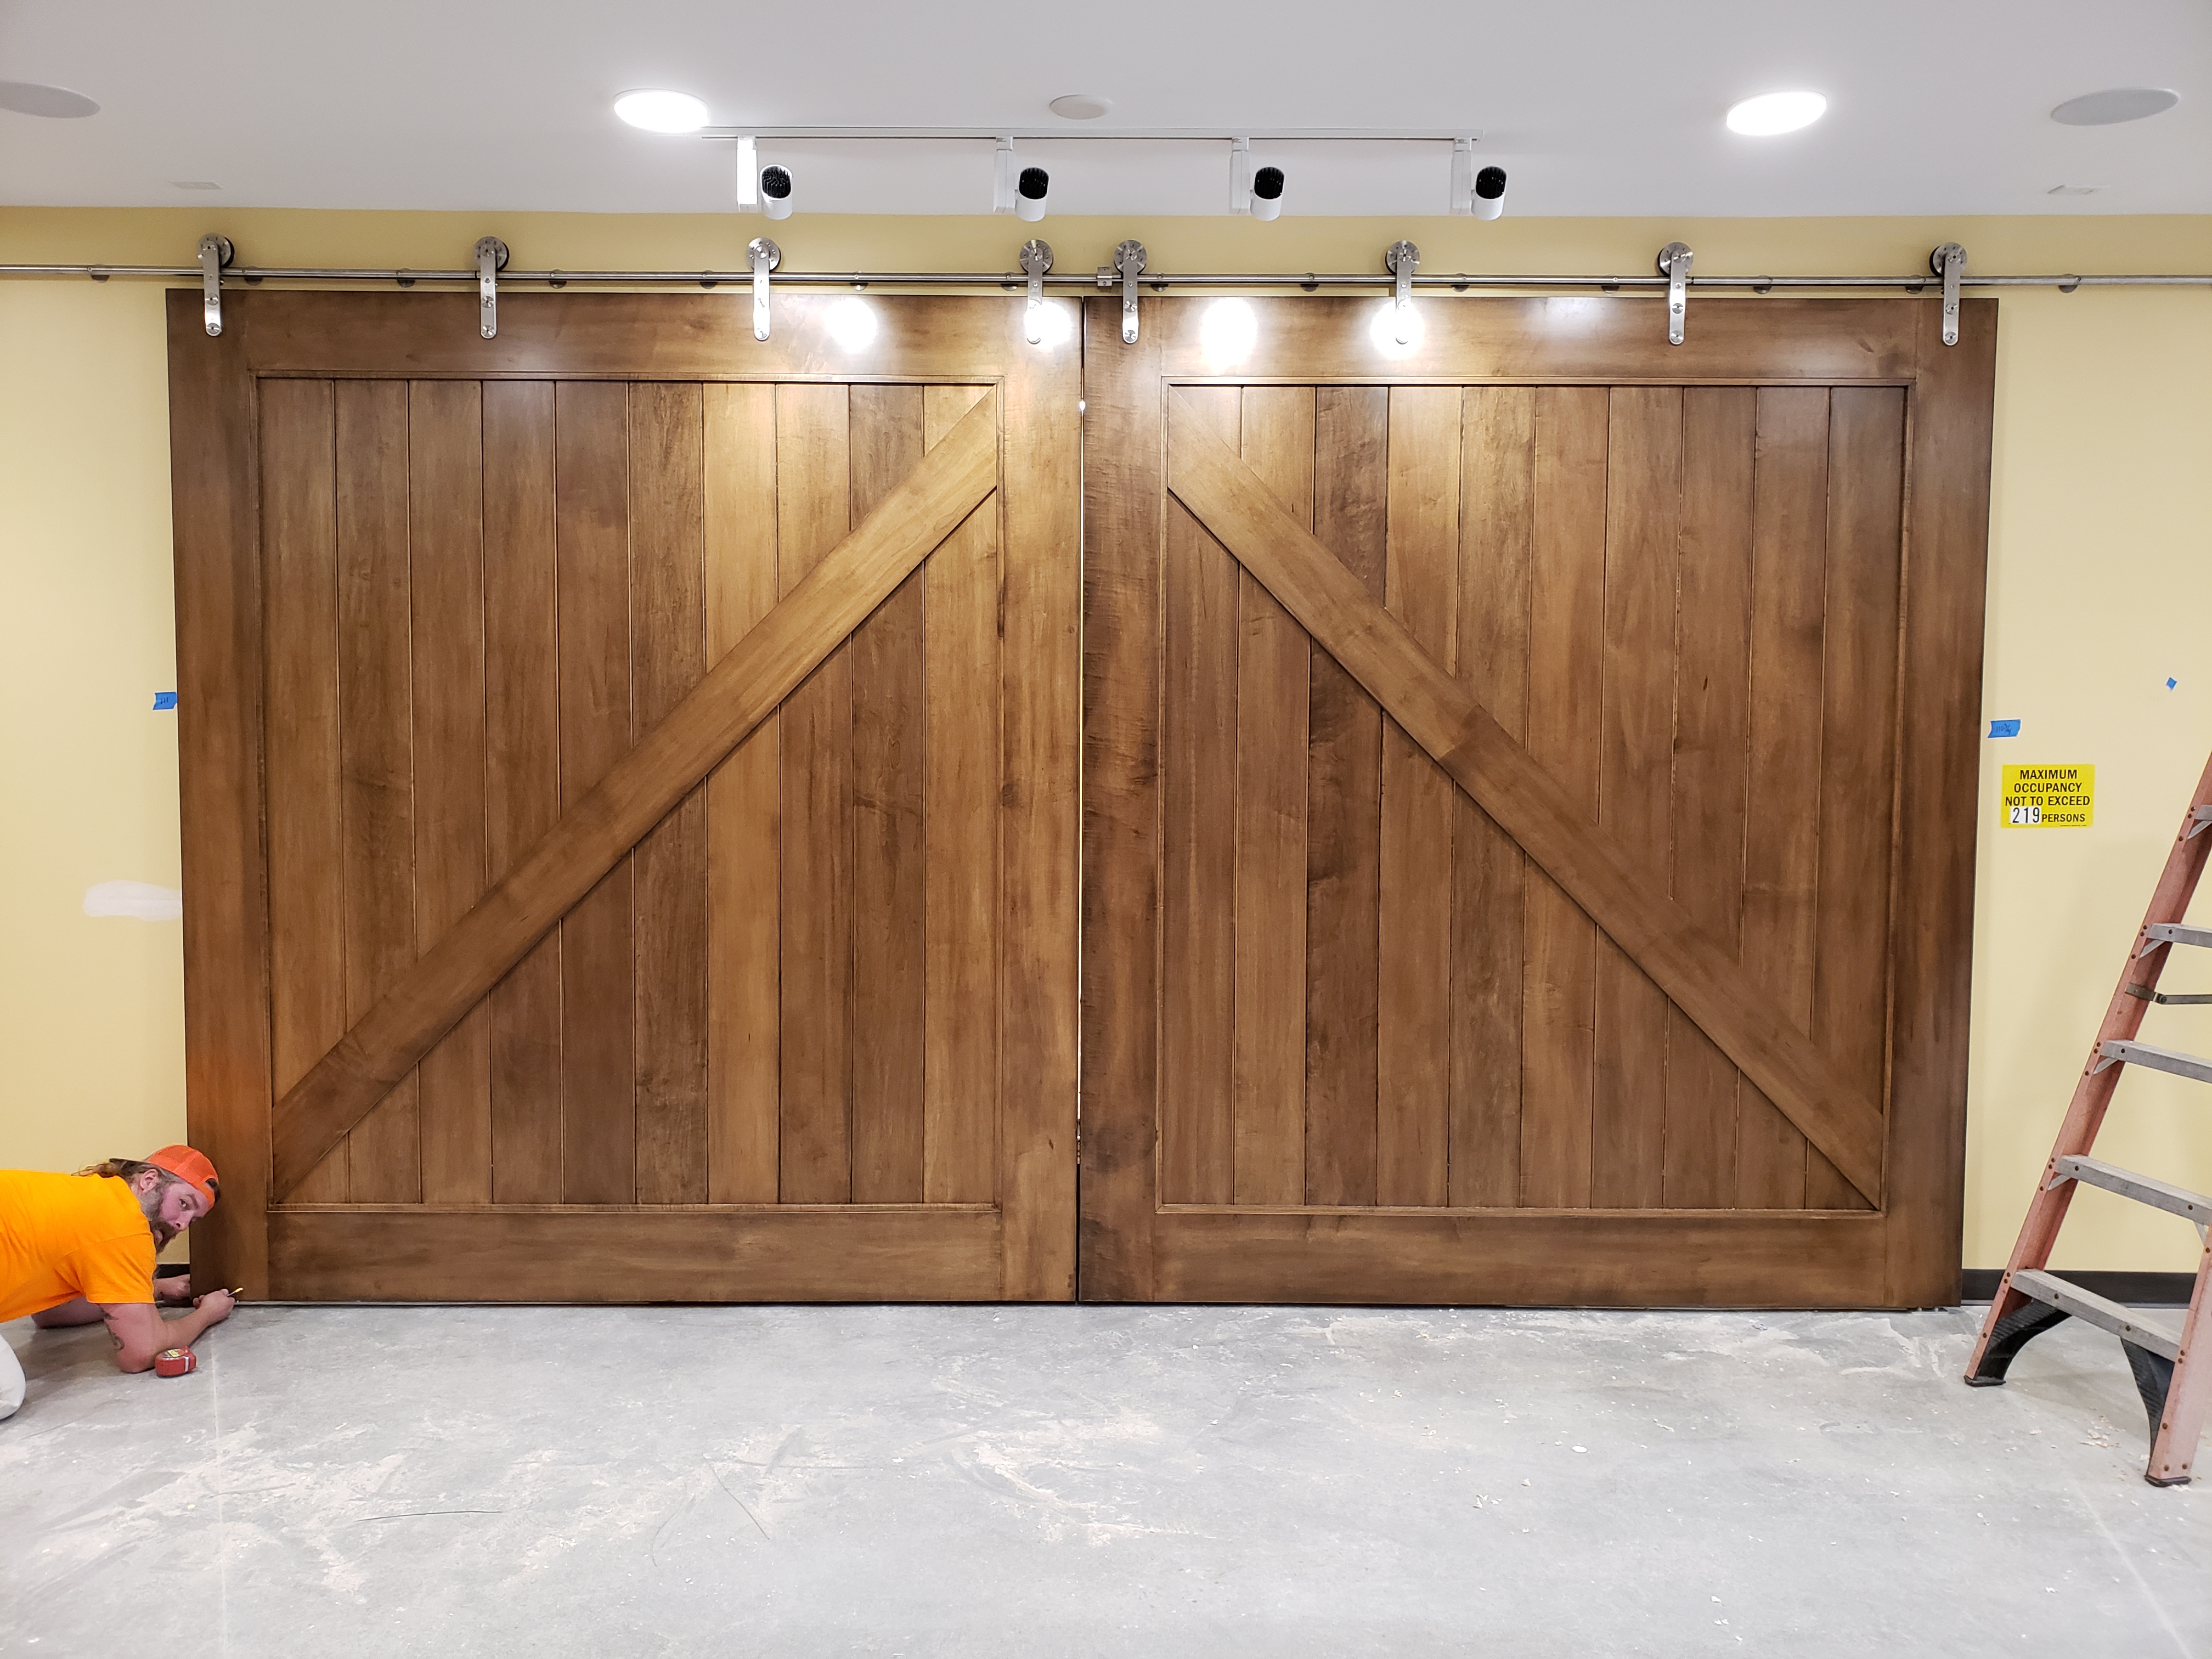 Barn Doors at the University of Missouri Columbia.